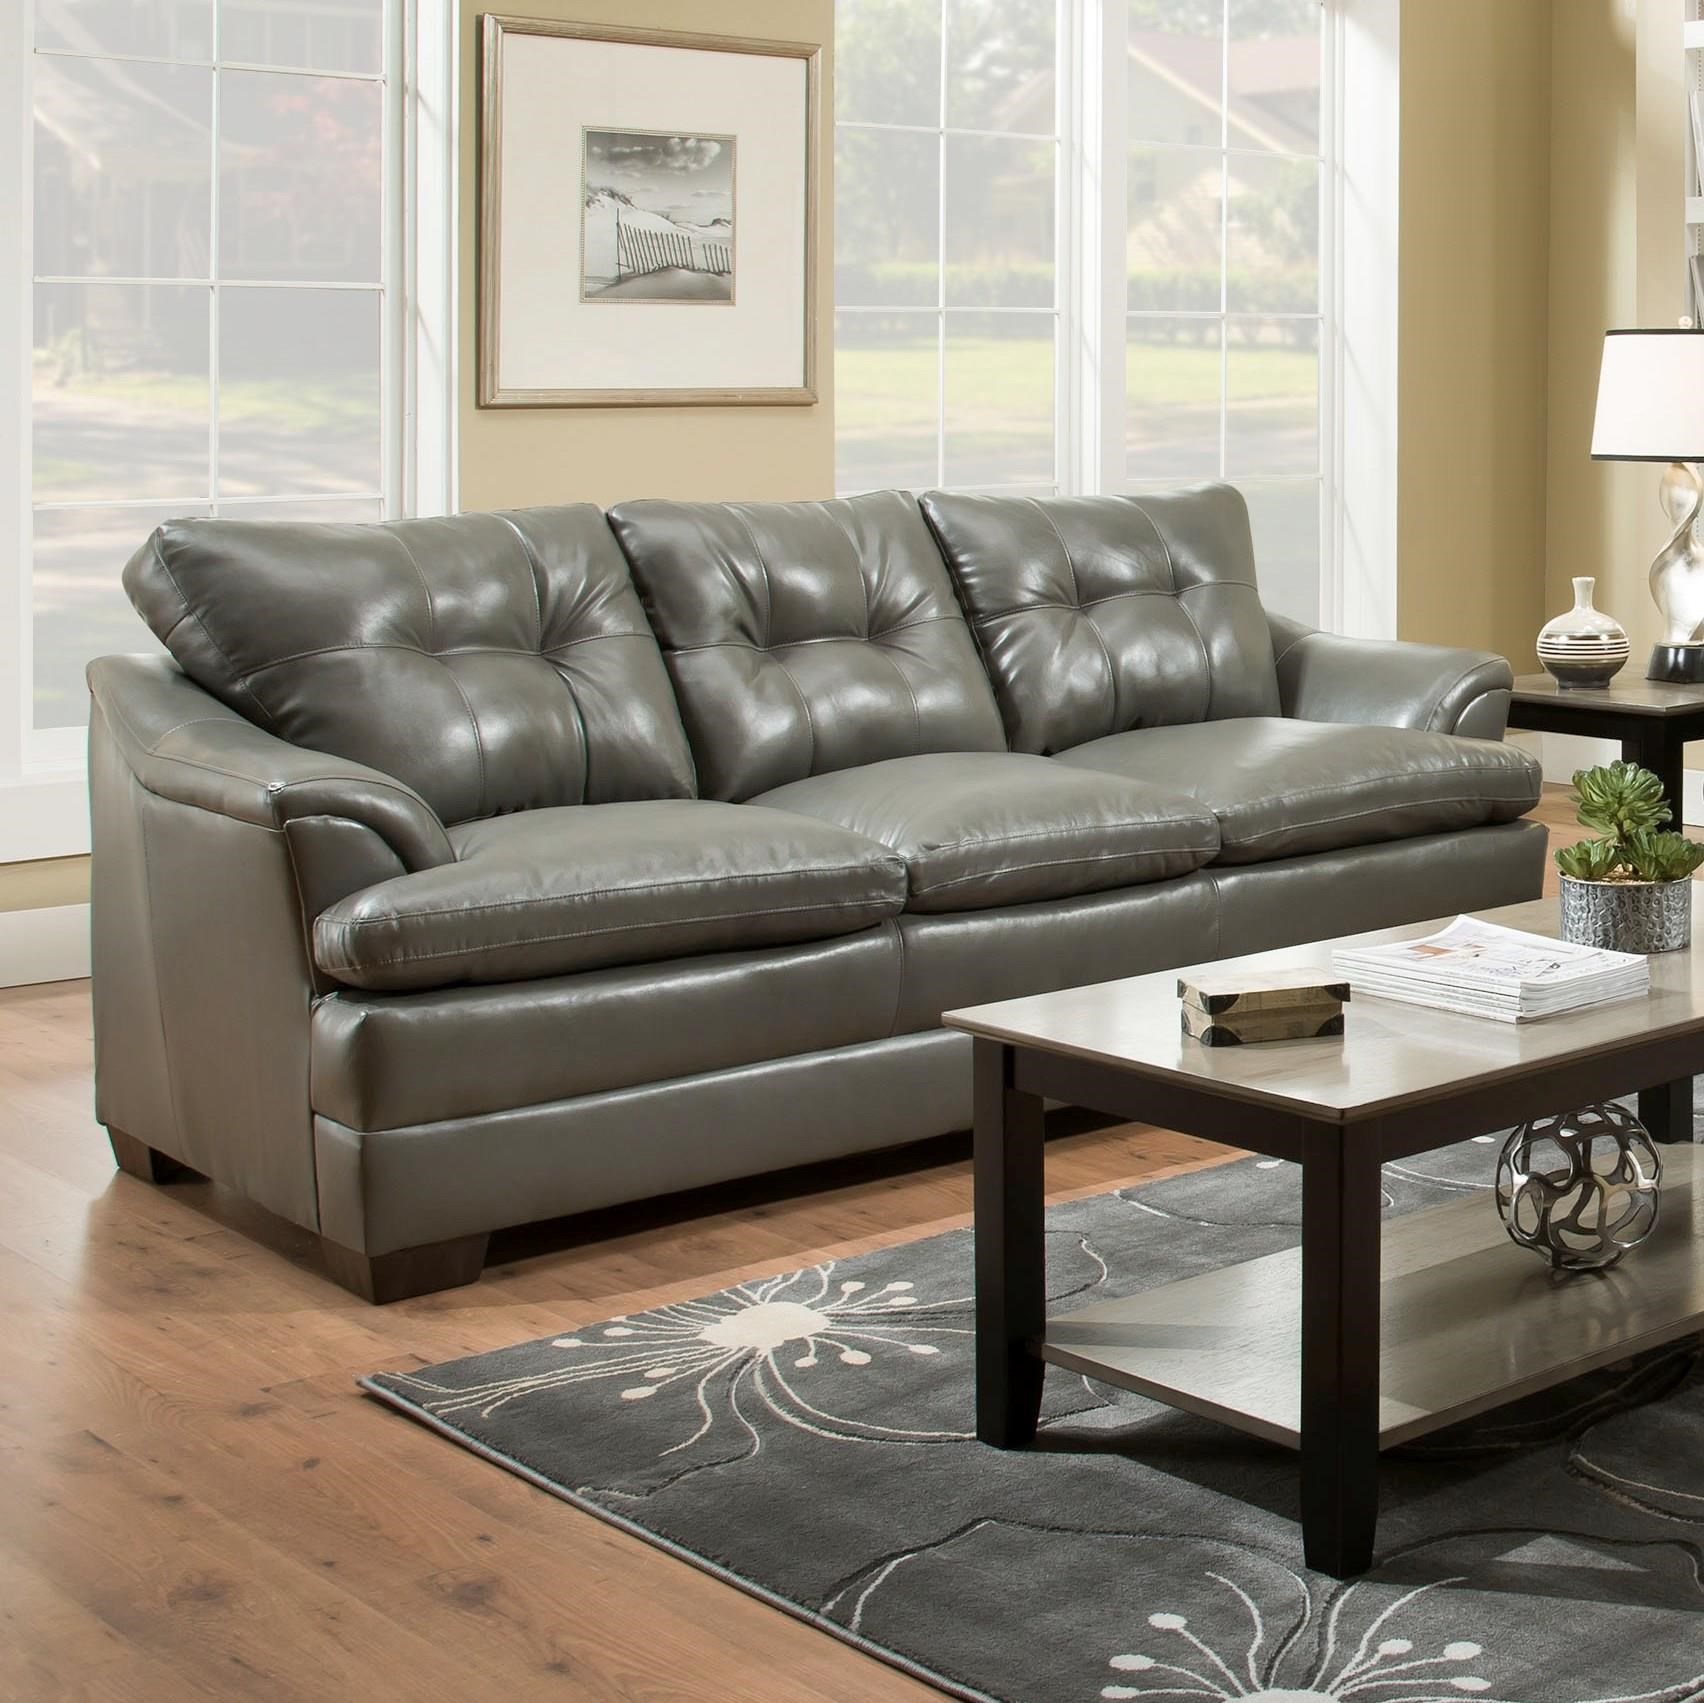 Simmons Upholstery 5122 Casual Sofa With Rolled Arms Royal